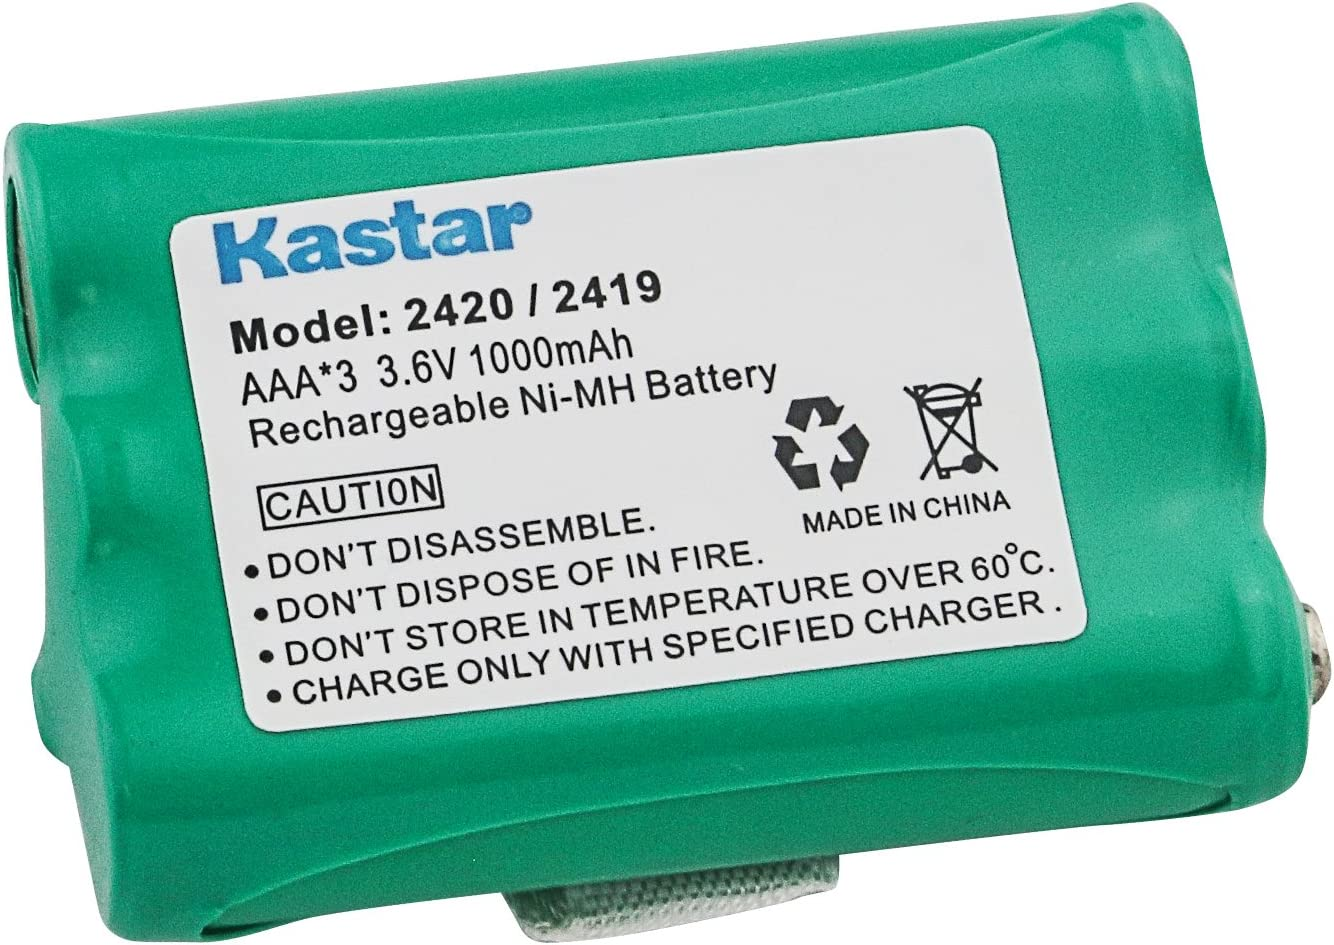 AT&T E5630 Cordless Phone Battery Replacement For Cordless Phone Battery 3 AAA - Replaces AT&T 2419, 2420, Vtech 80-5542-00, Olympia CDP models